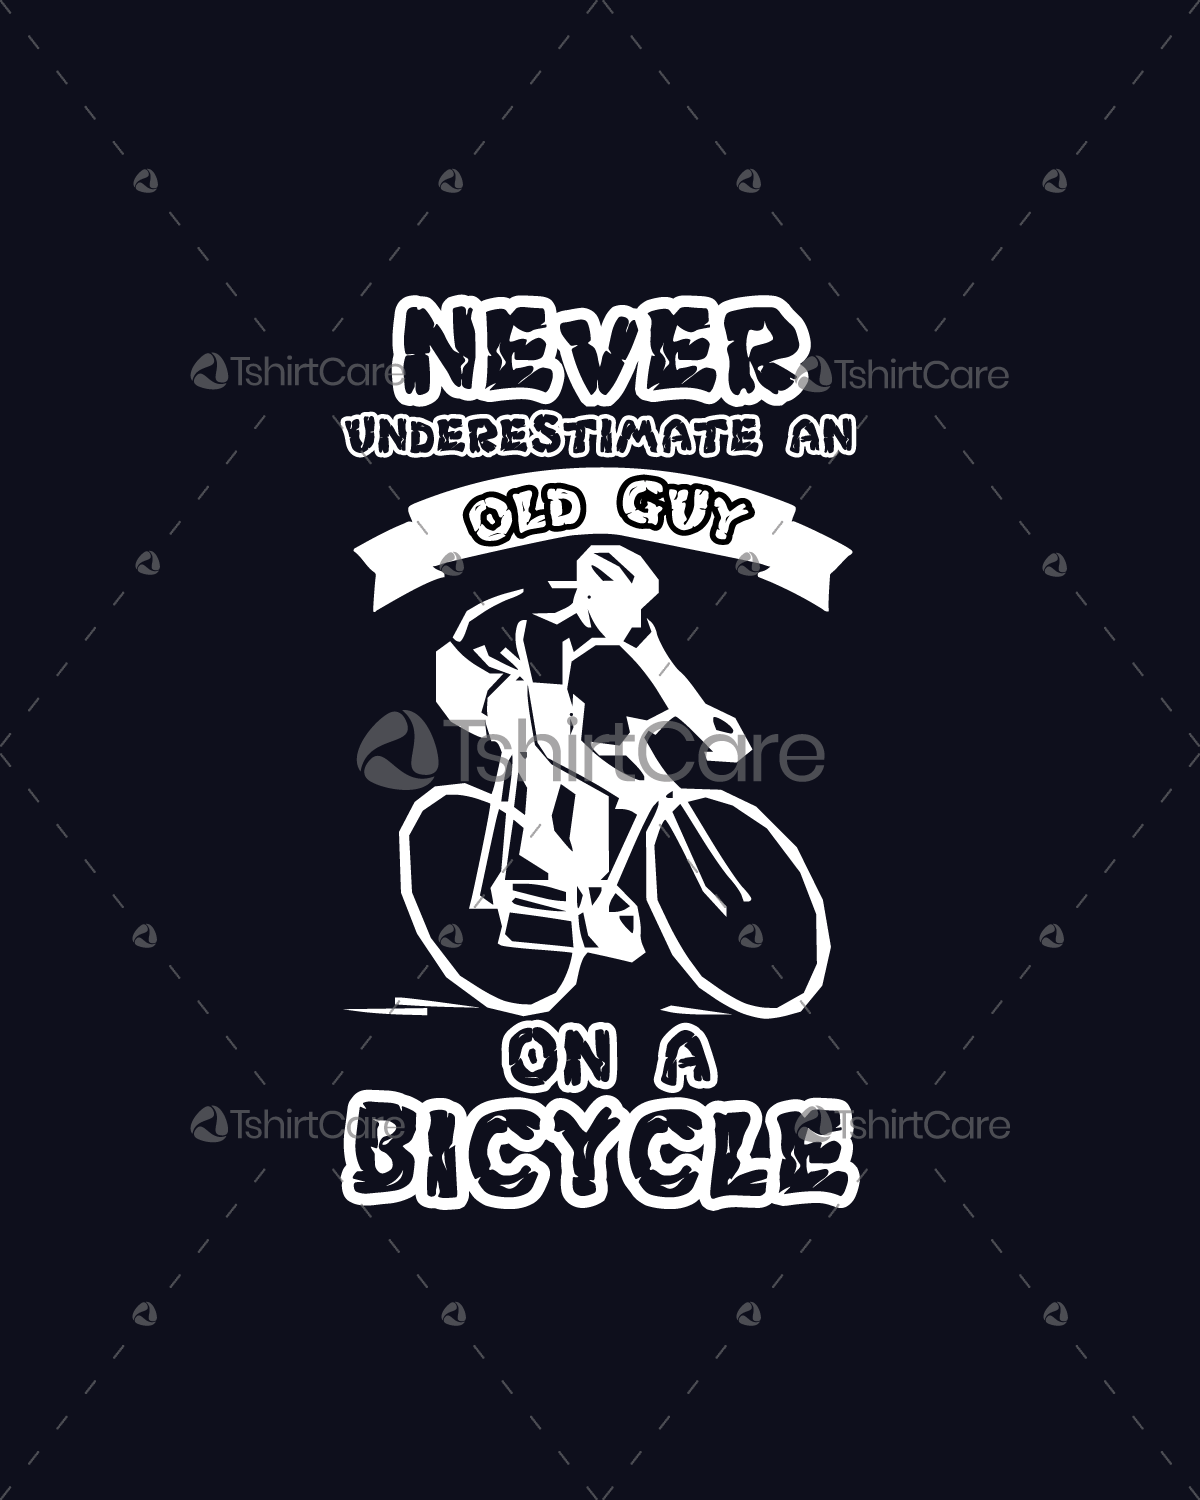 Cycle Shirt Design   Never Underestimate An Old Guy On A Bicycle T Shirt Design For